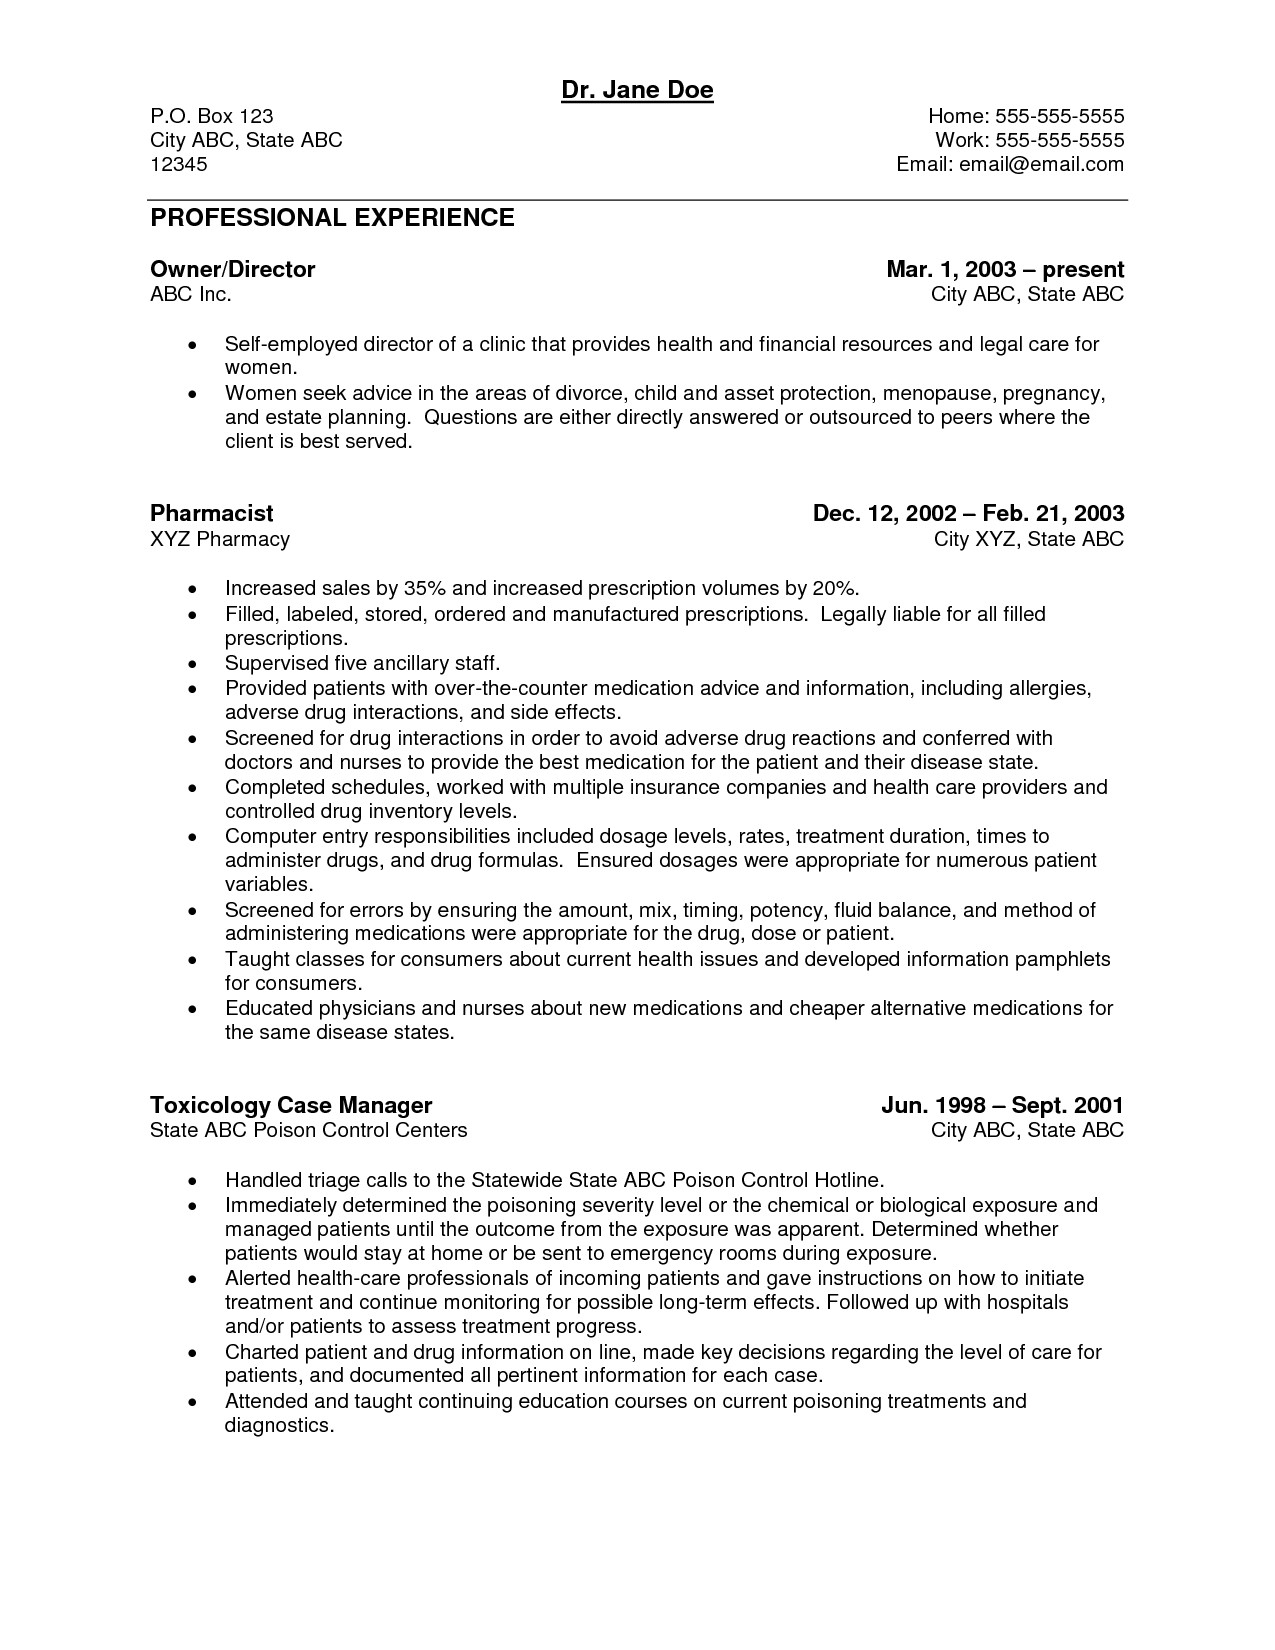 Resume for Medical Office Manager - Medical Fice Manager Resume Examples Best Management Resume